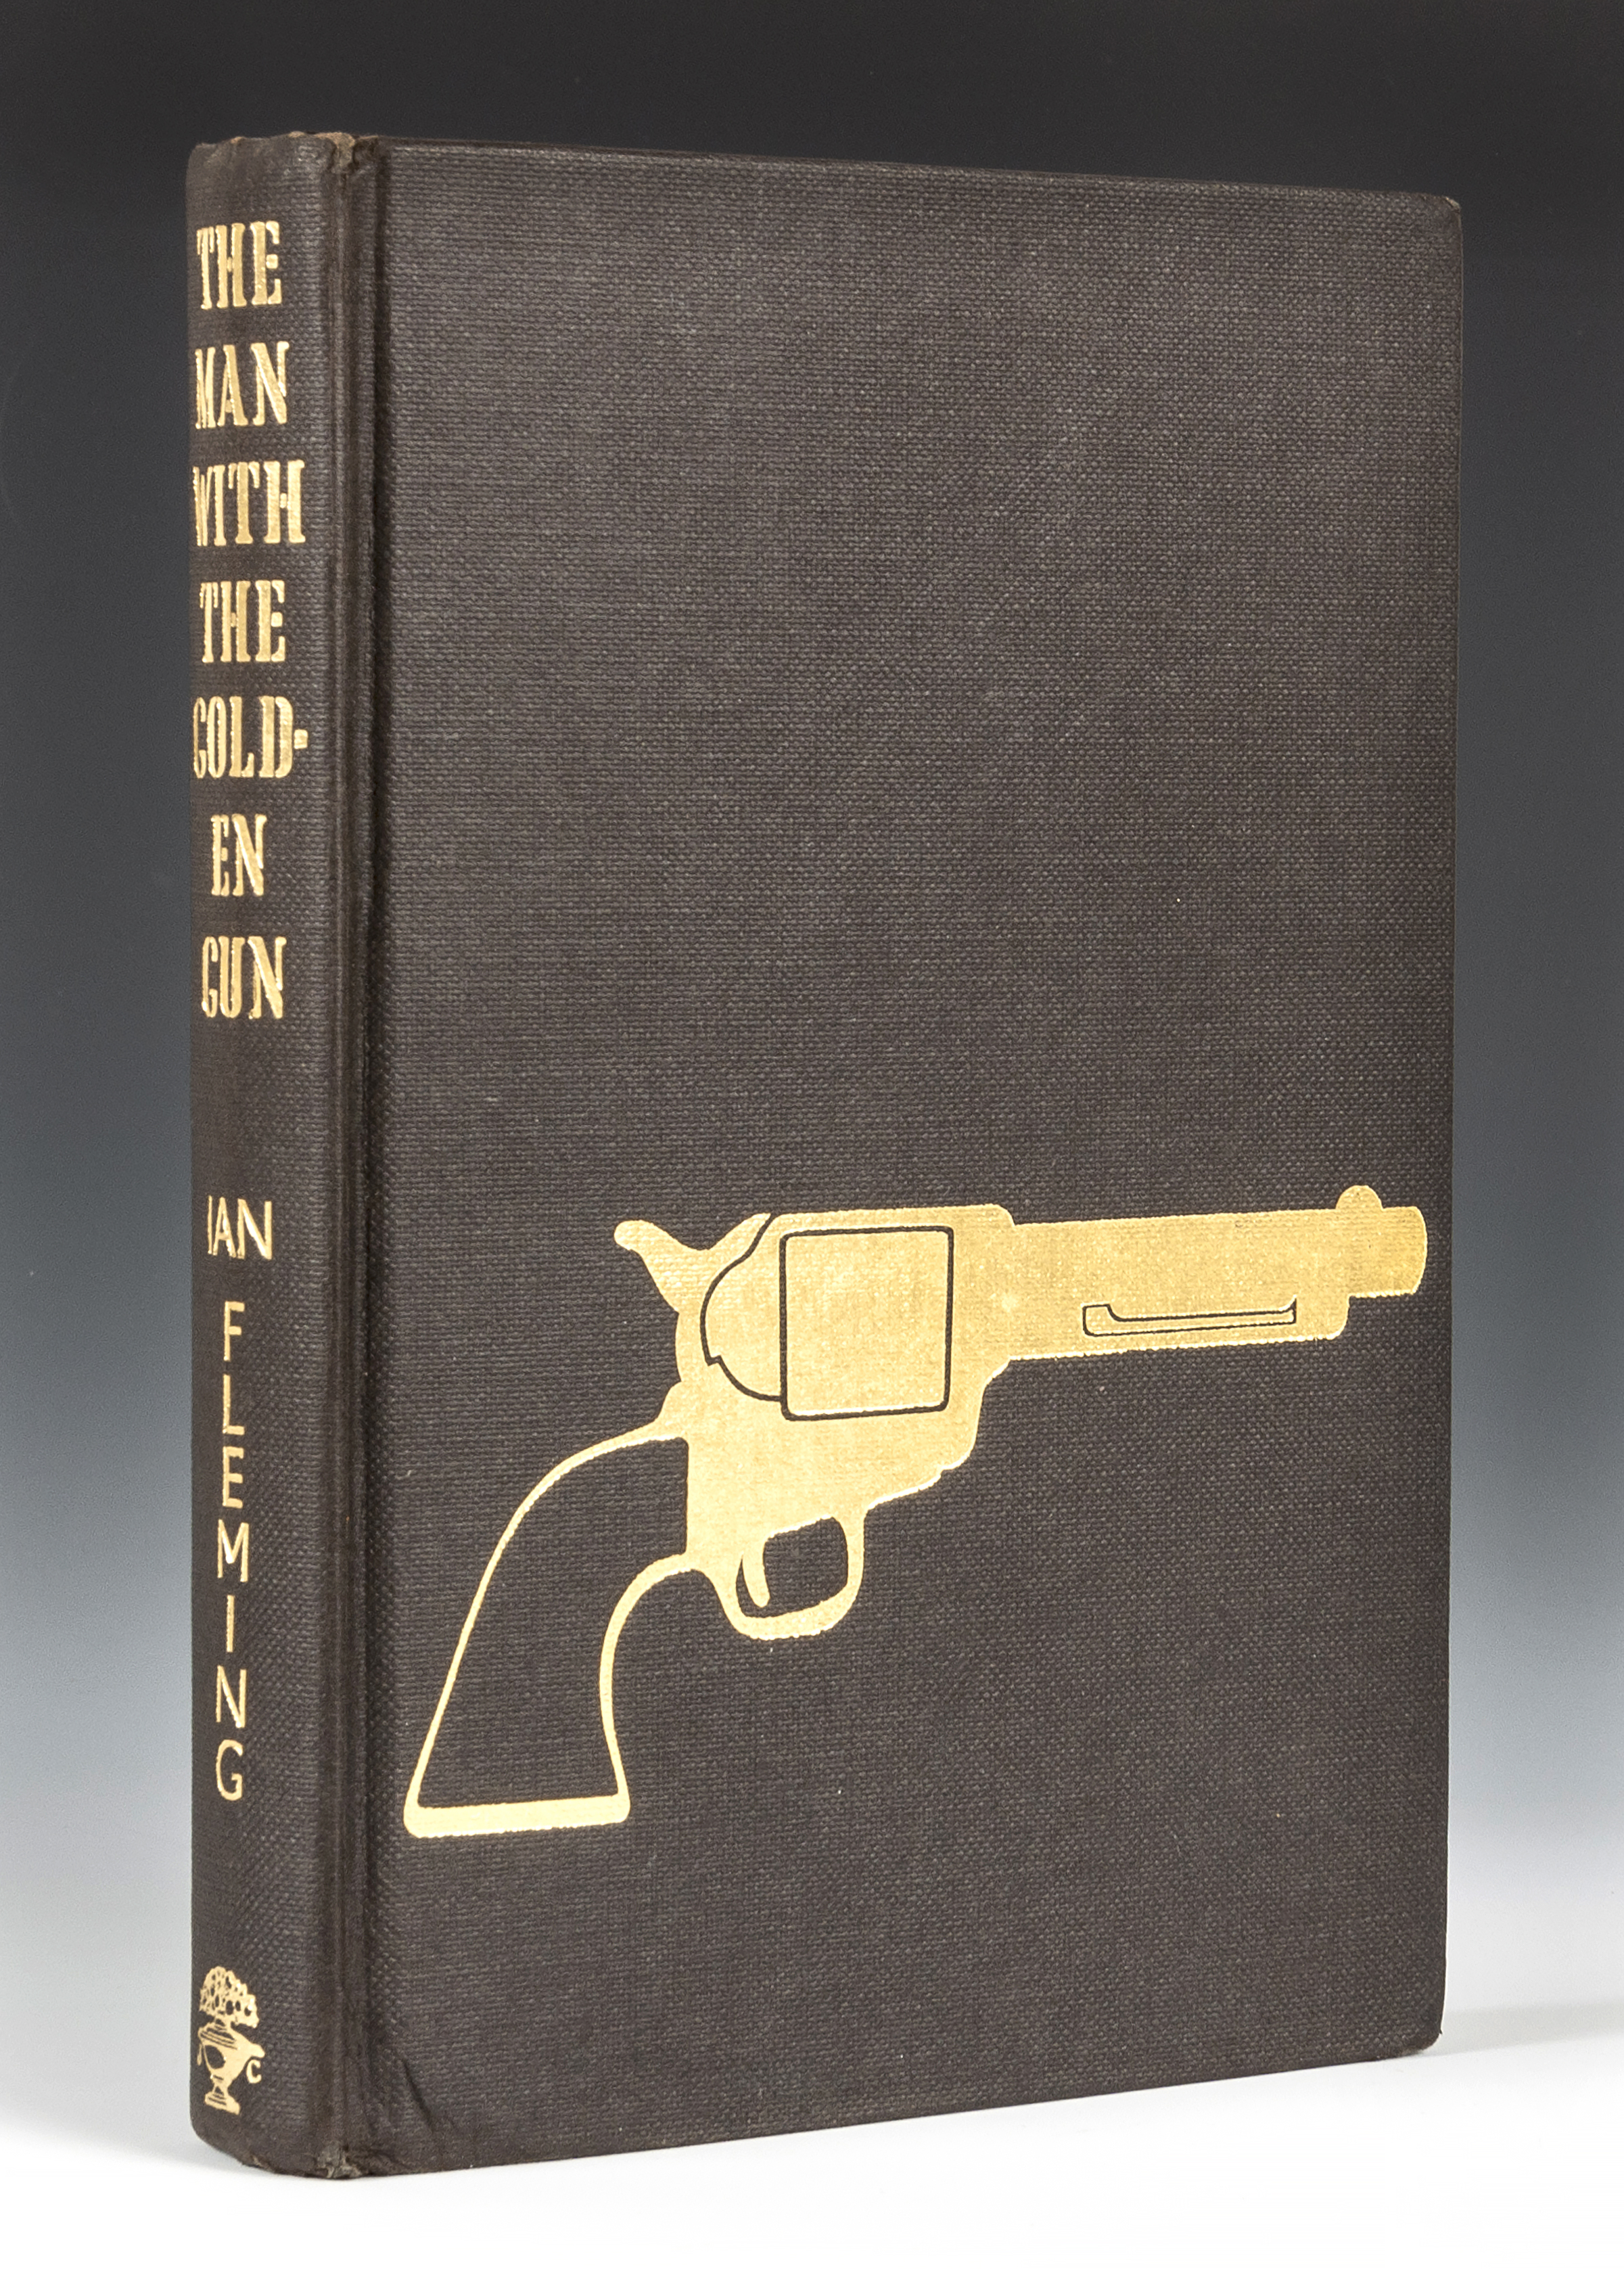 James Bond first editions > The Man with the Golden Gun, first state boards